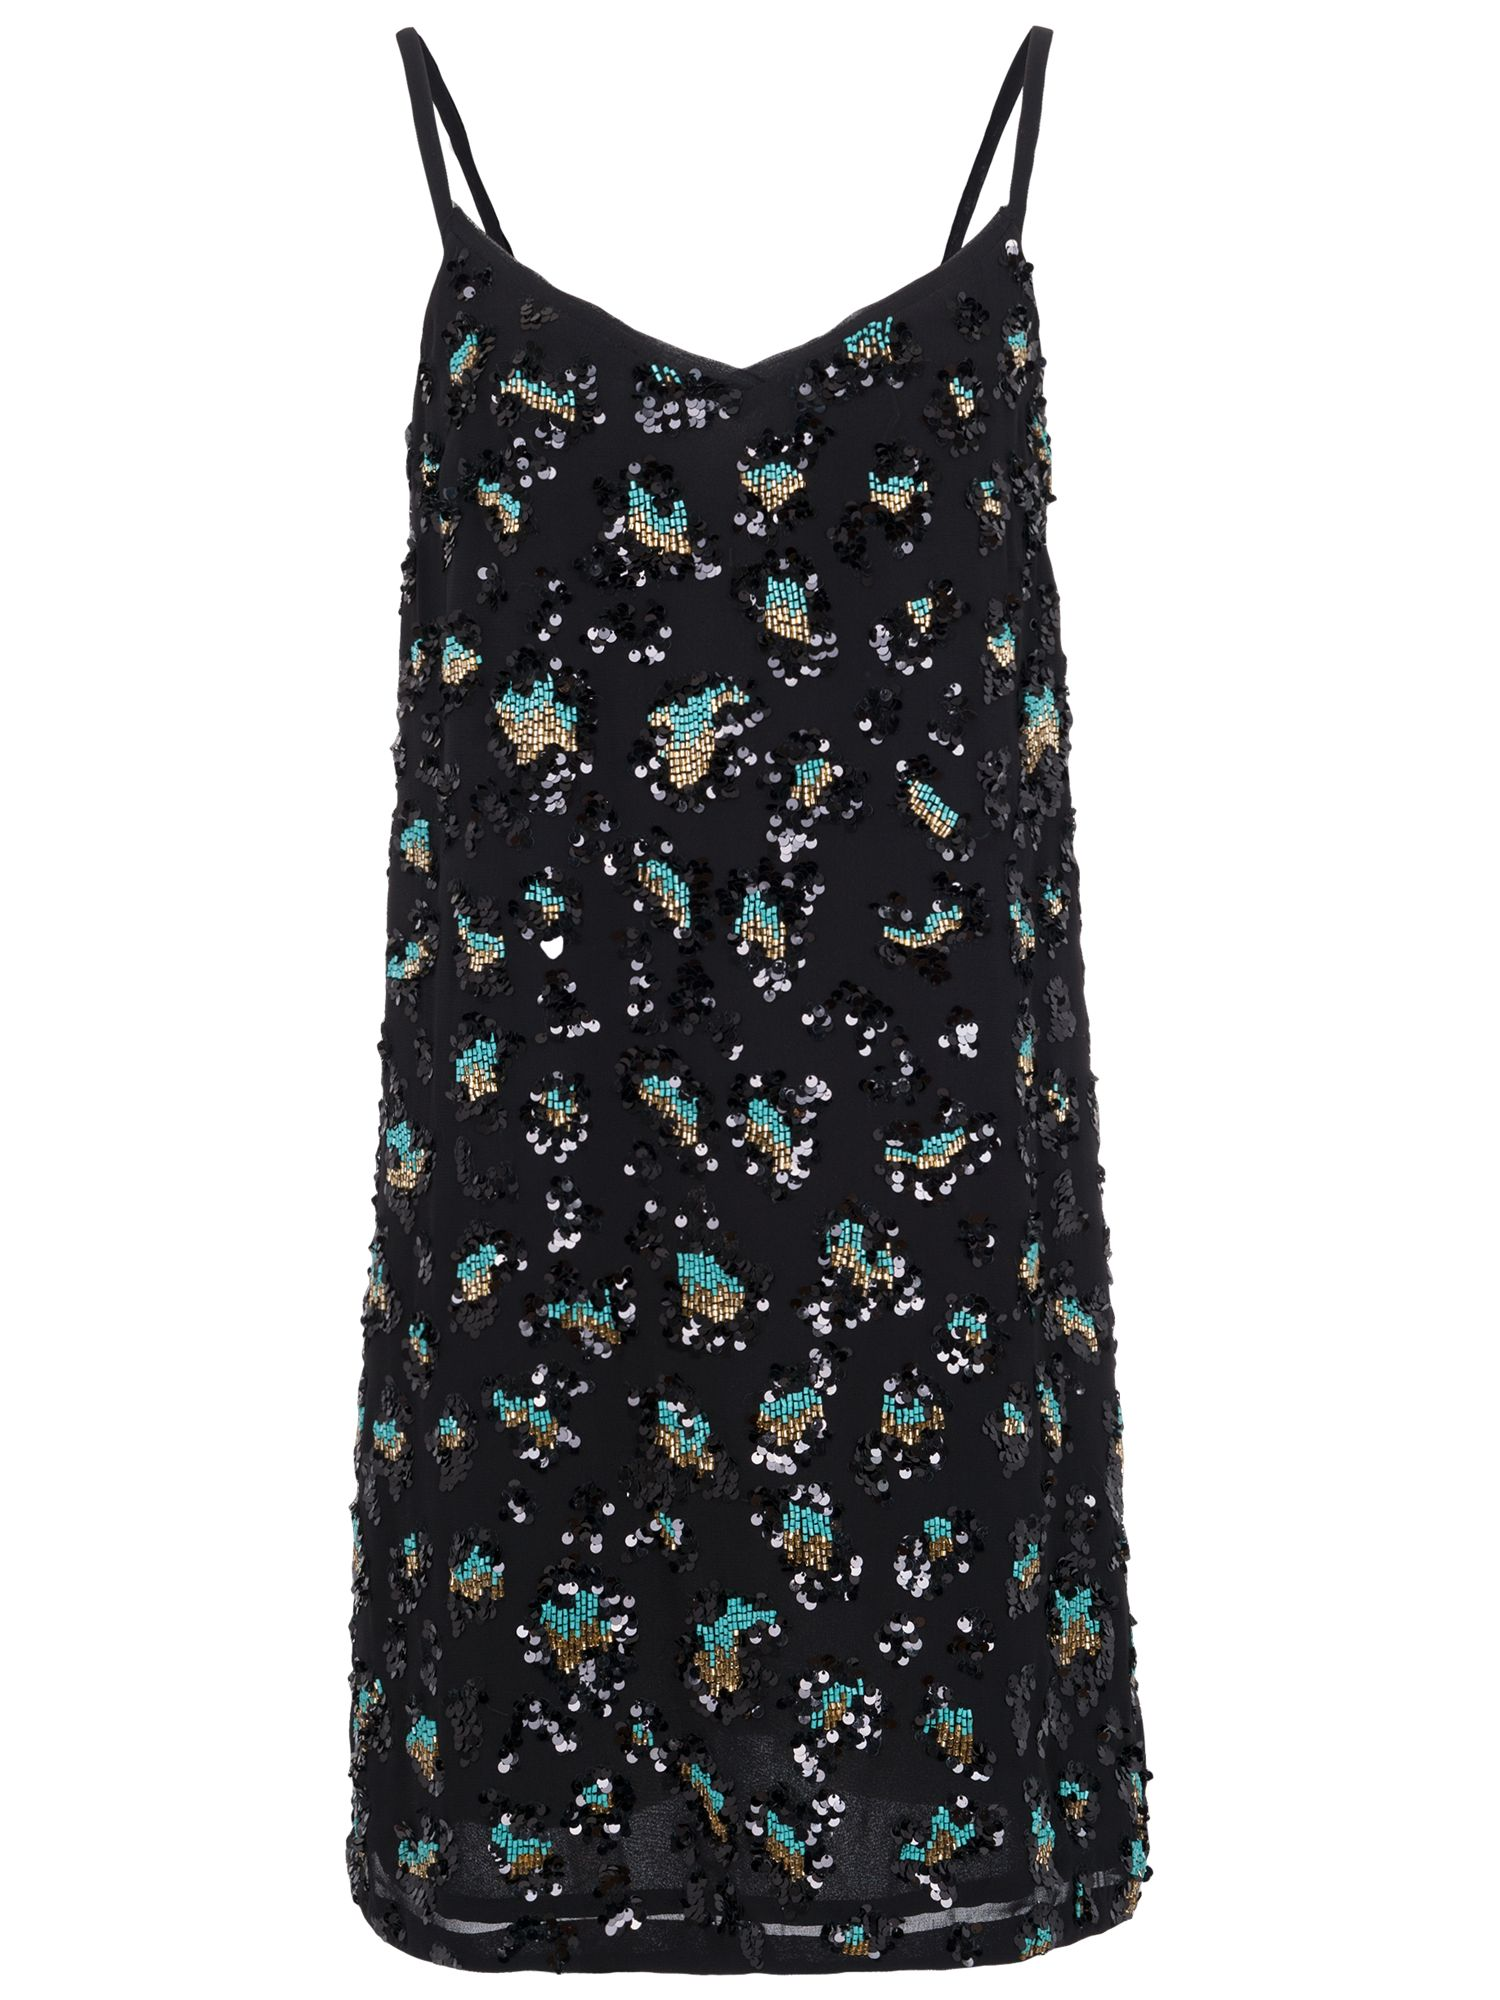 french connection sequin leopard tunic dress black/turquoise, french, connection, sequin, leopard, tunic, dress, black/turquoise, french connection, 12|6|16|8|14|10, women, womens dresses, 1923458